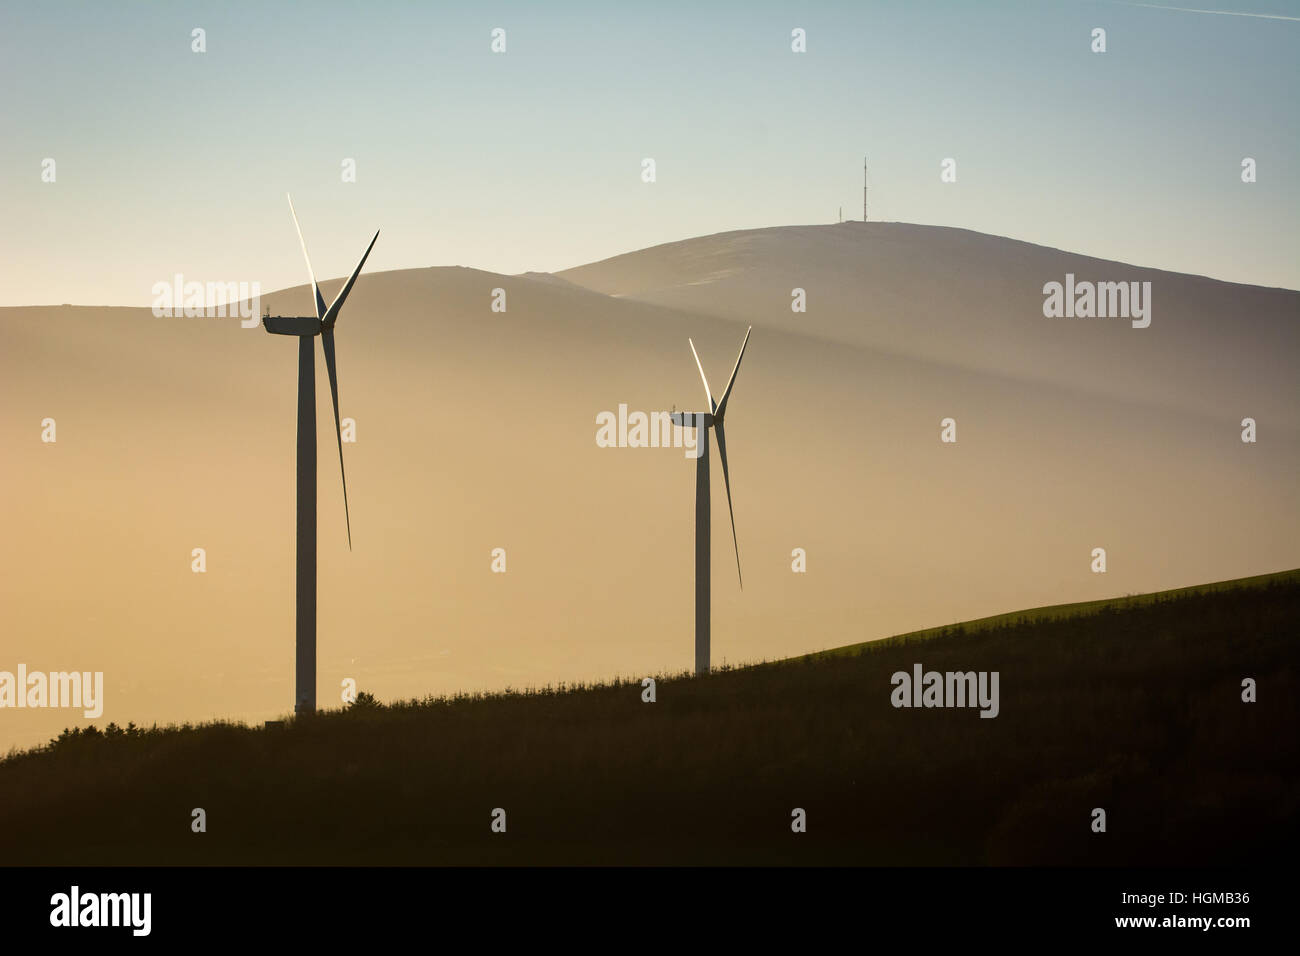 Wind turbines against a soft evening light and a backdrop of Mount Leinster in County Wexford in Ireland - Stock Image